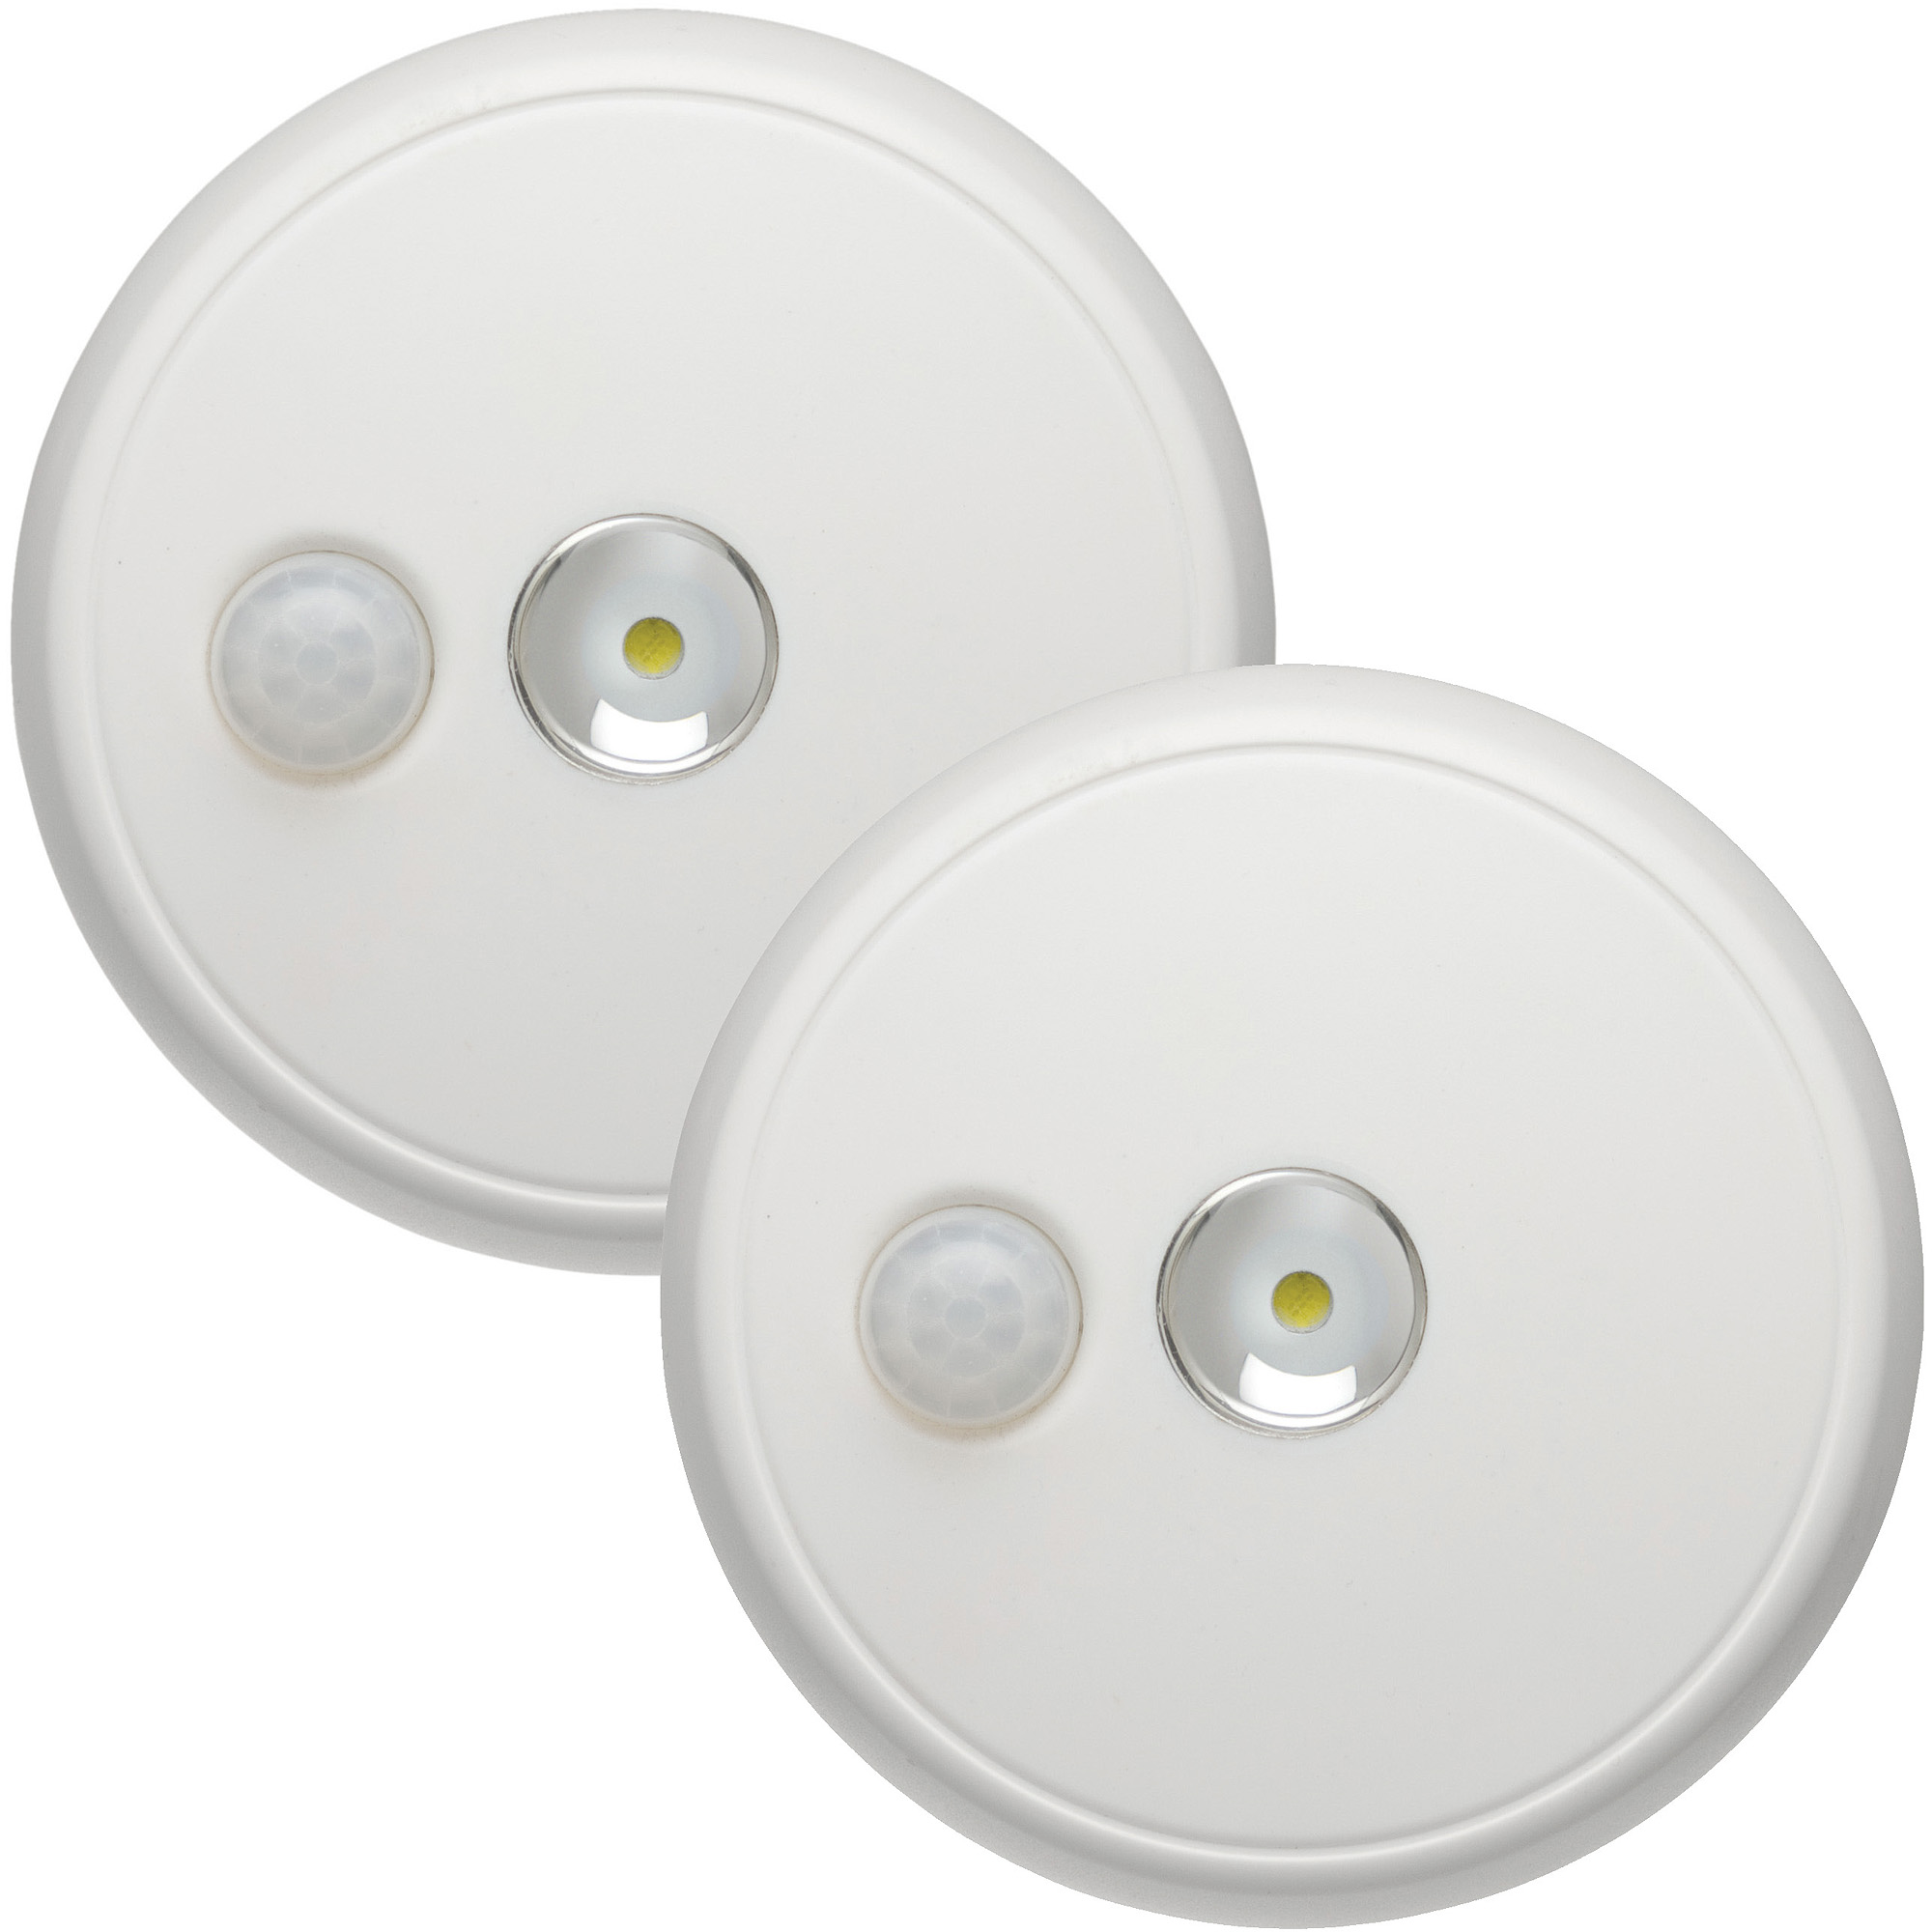 Mr Beams Wireless Motion Sensing Led